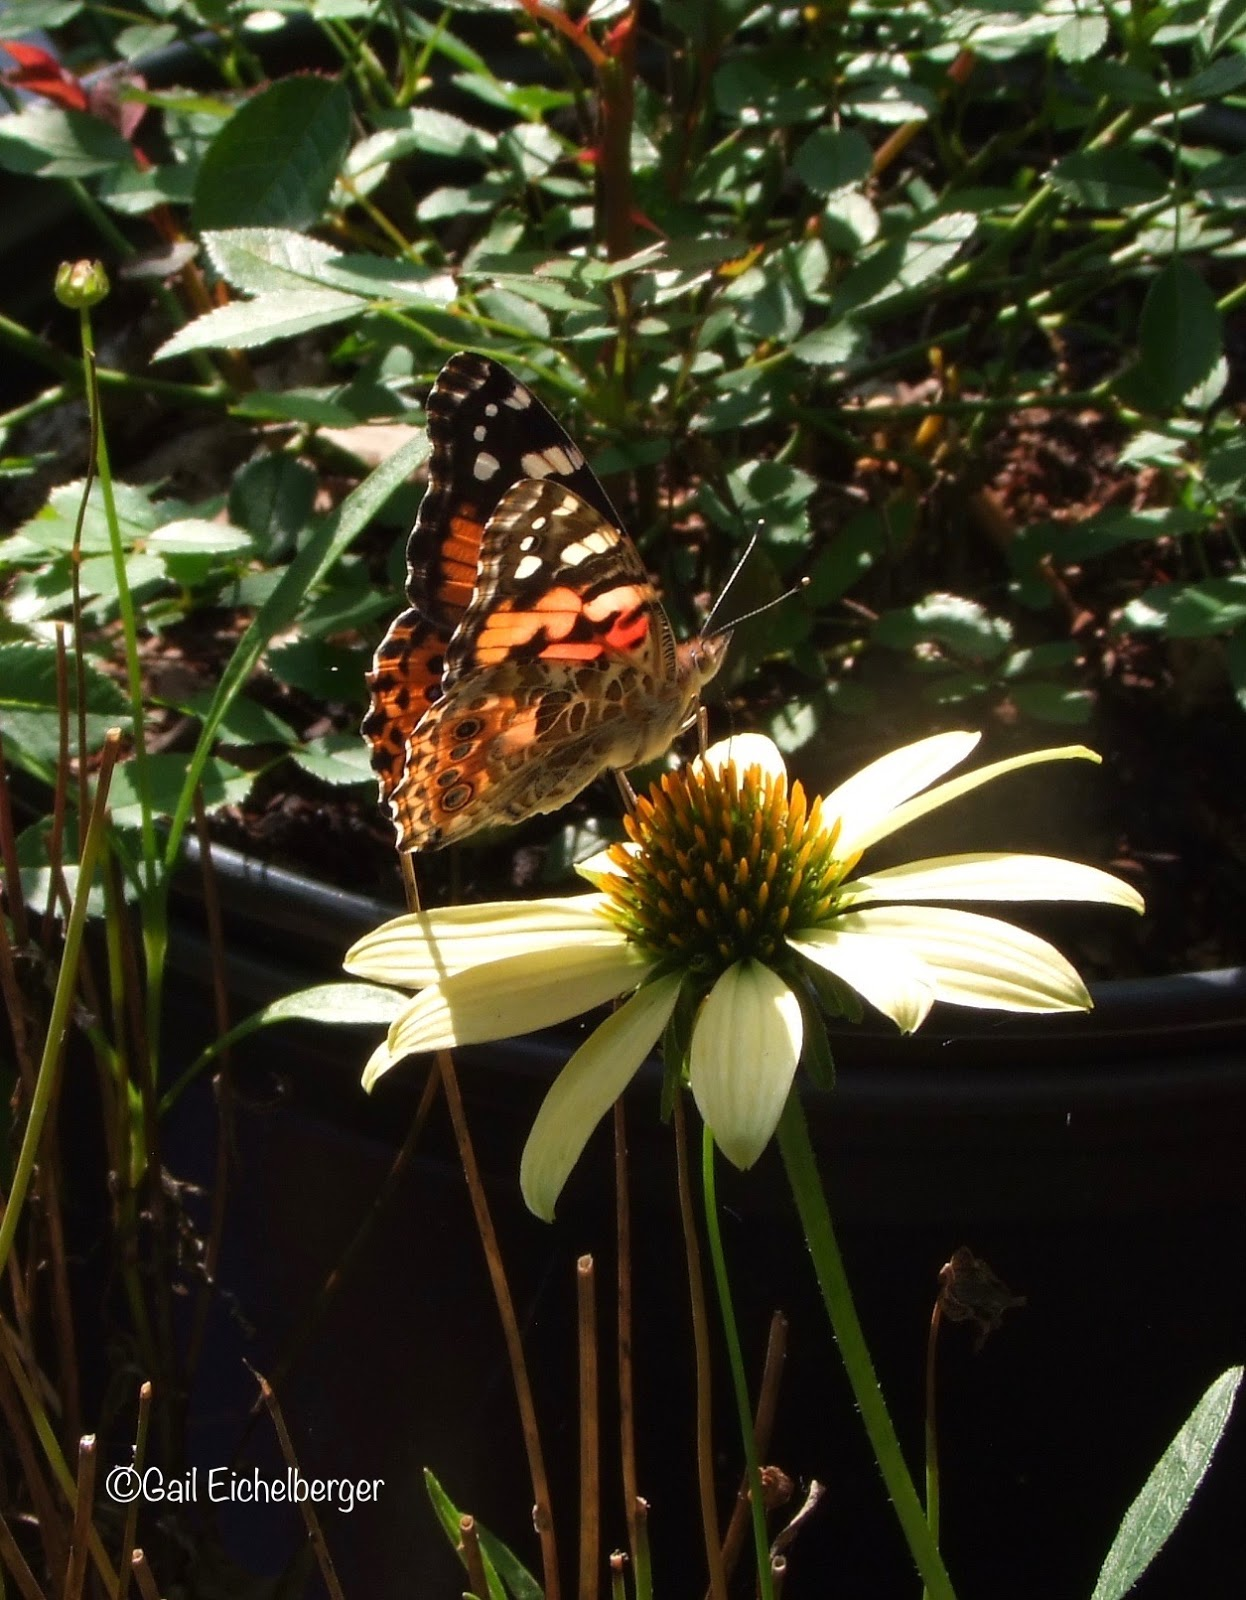 clay and limestone: a painted lady in the garden